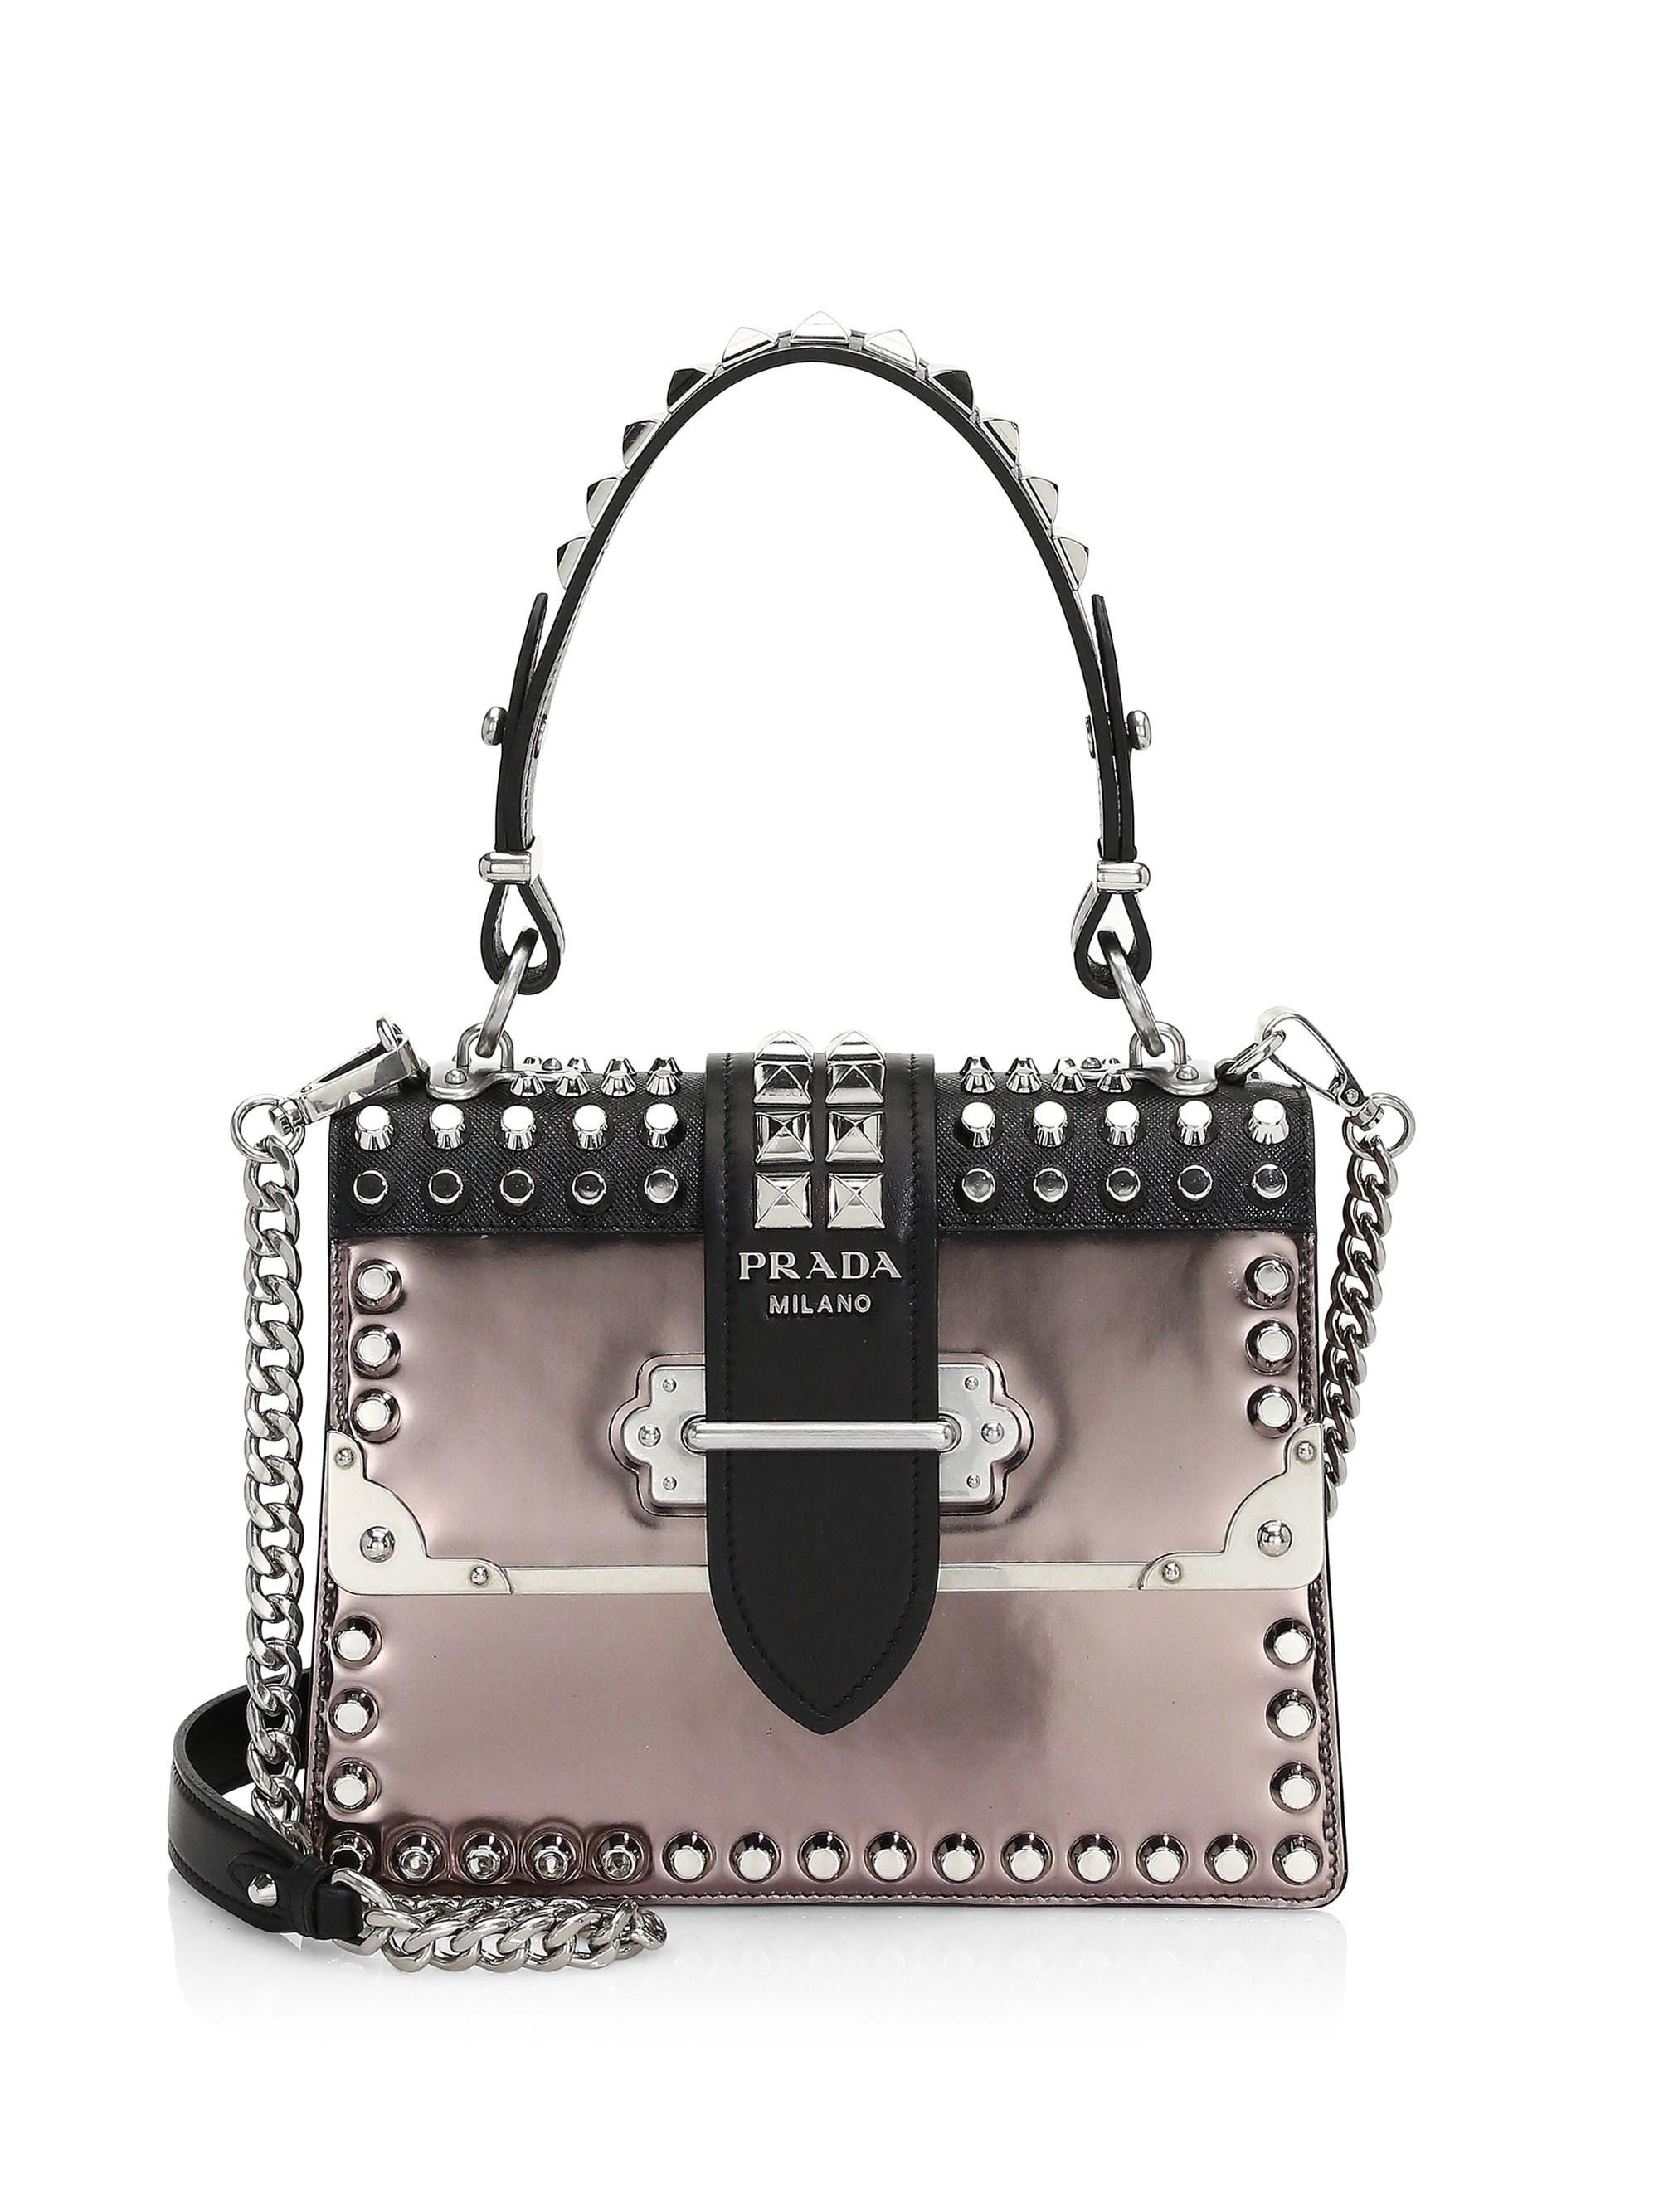 Lyst - Prada Studded Cahier Leather Top Handle Bag in Black 0782d02a23